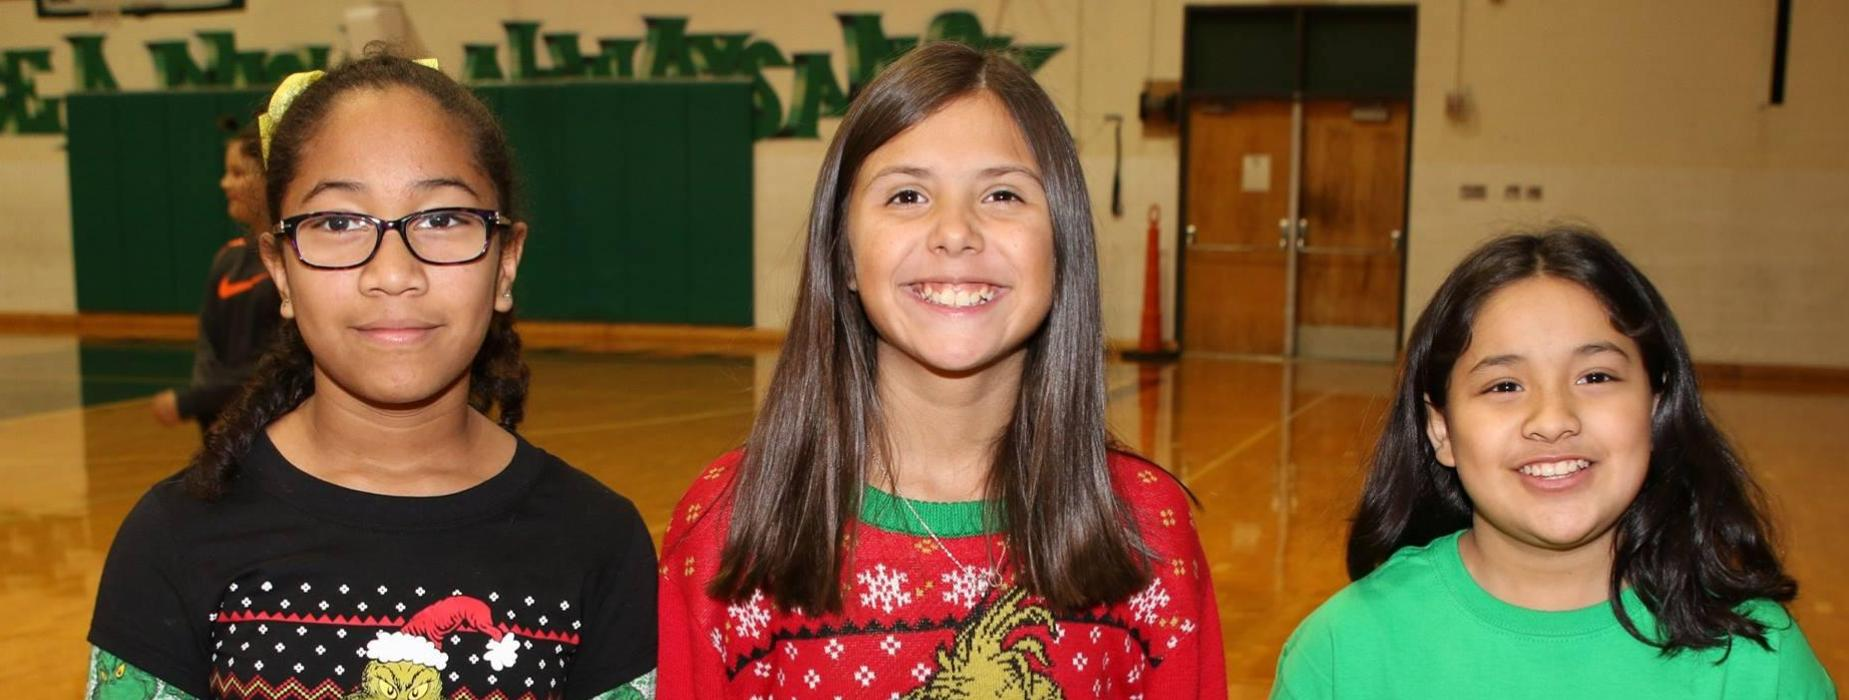 3 students with Grinch sweaters